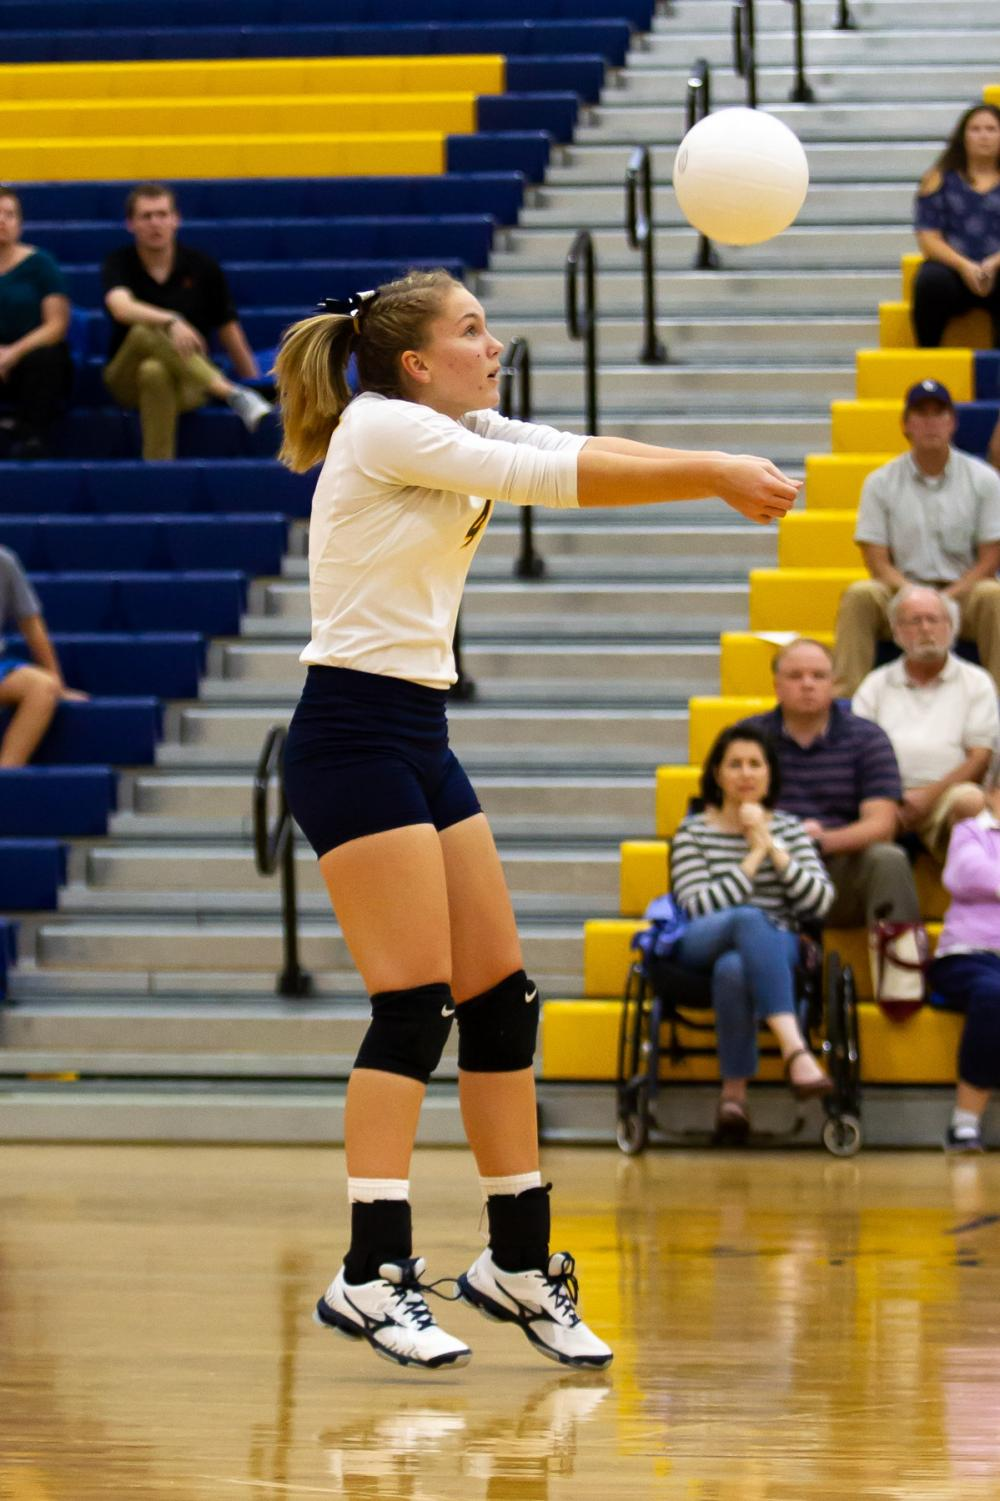 Junior Amy Glowatch at last year's JV match at Western Albemarle